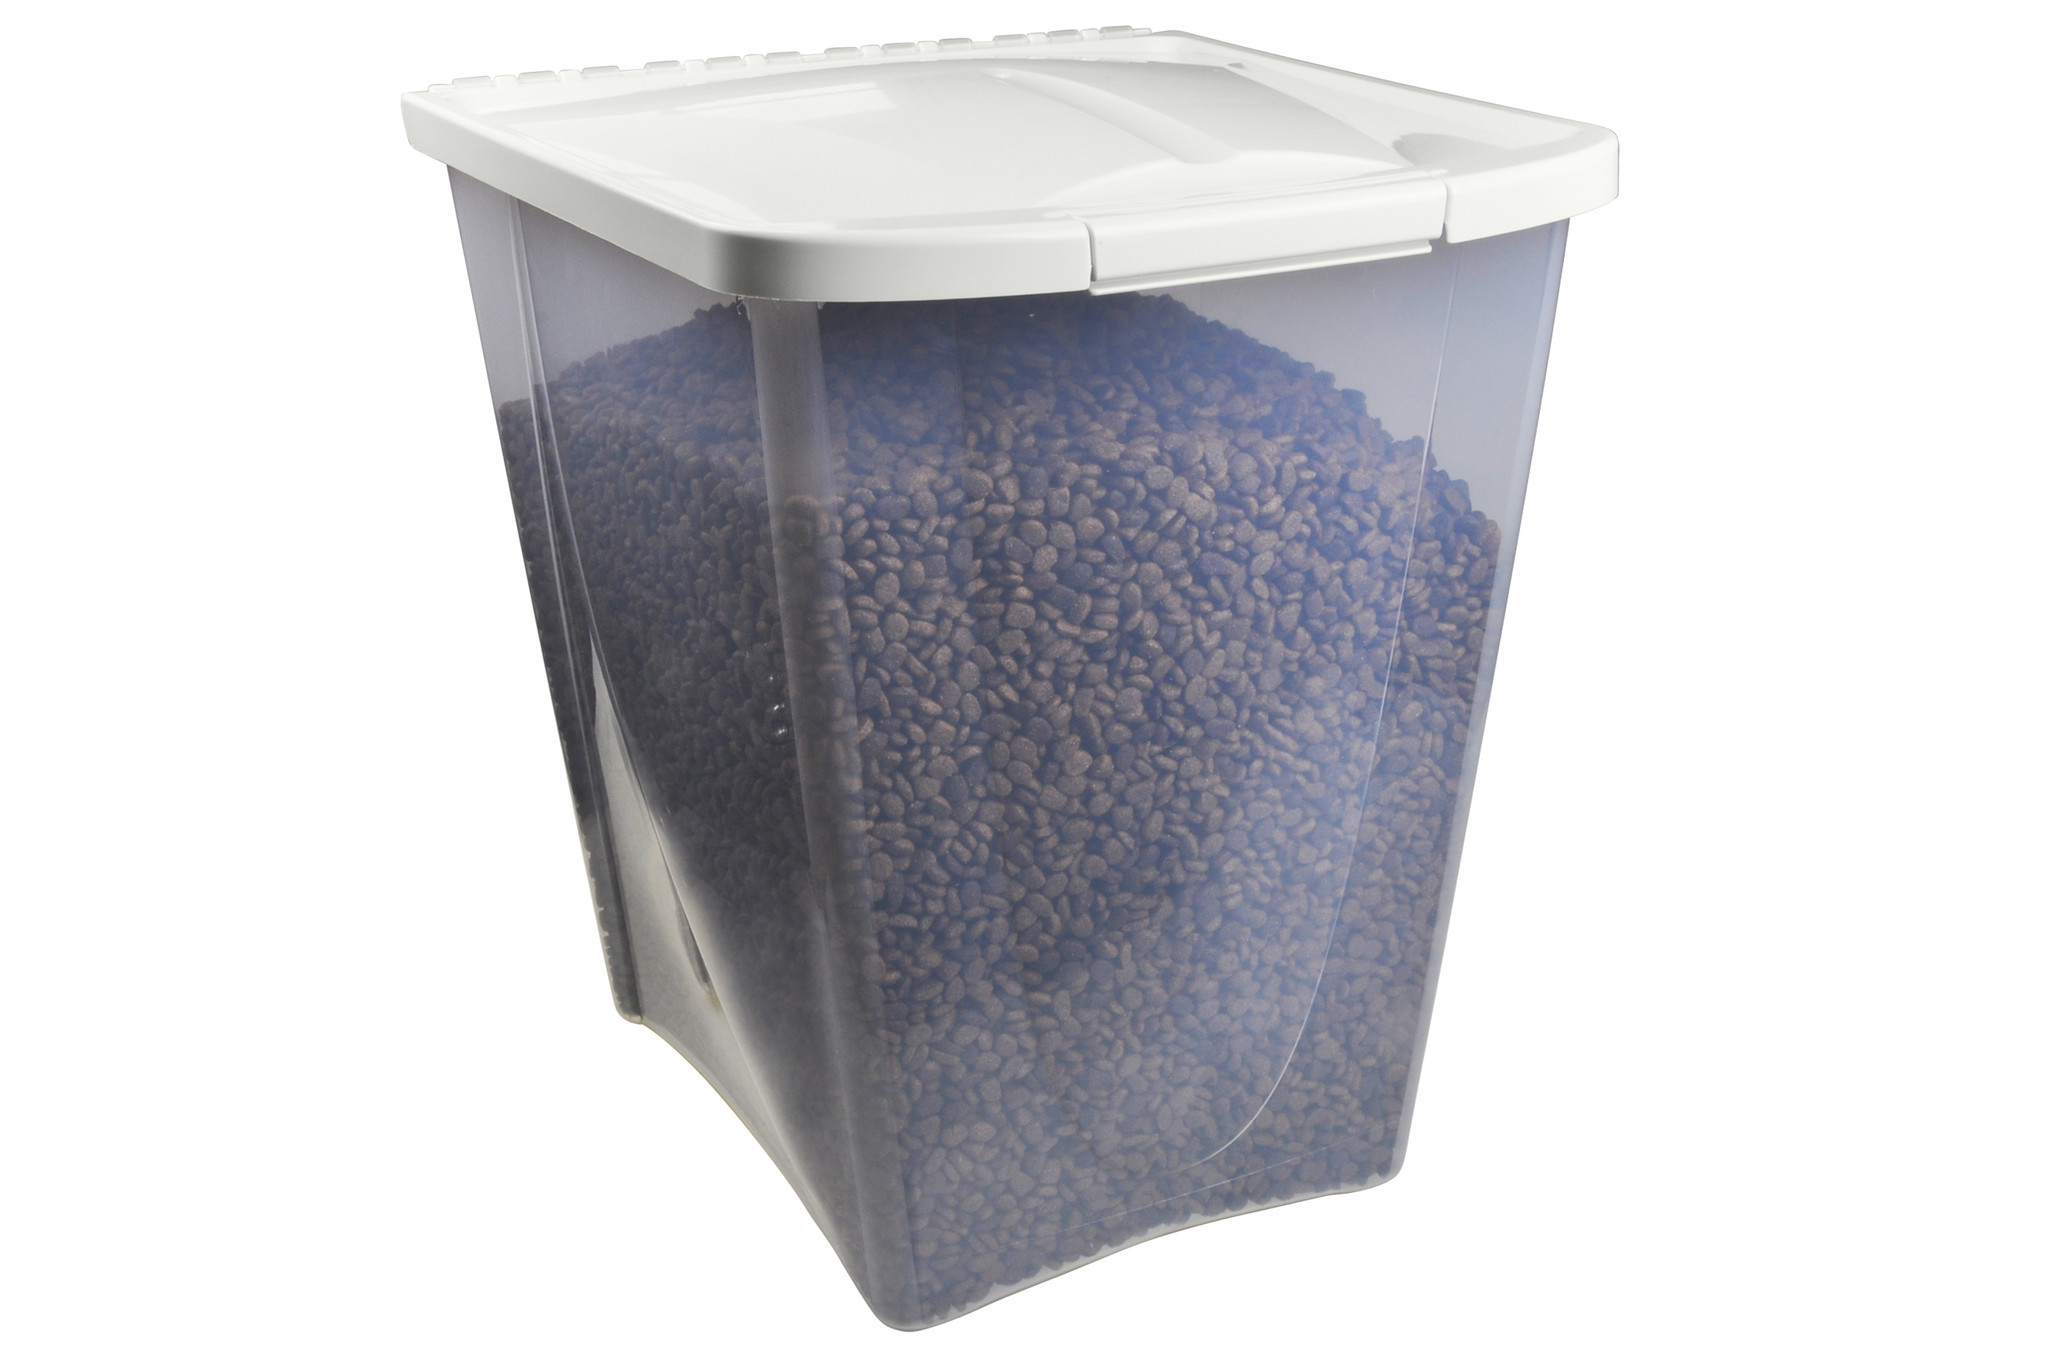 VANNESS Van Ness Pet Food Container 50 lb. Product Image